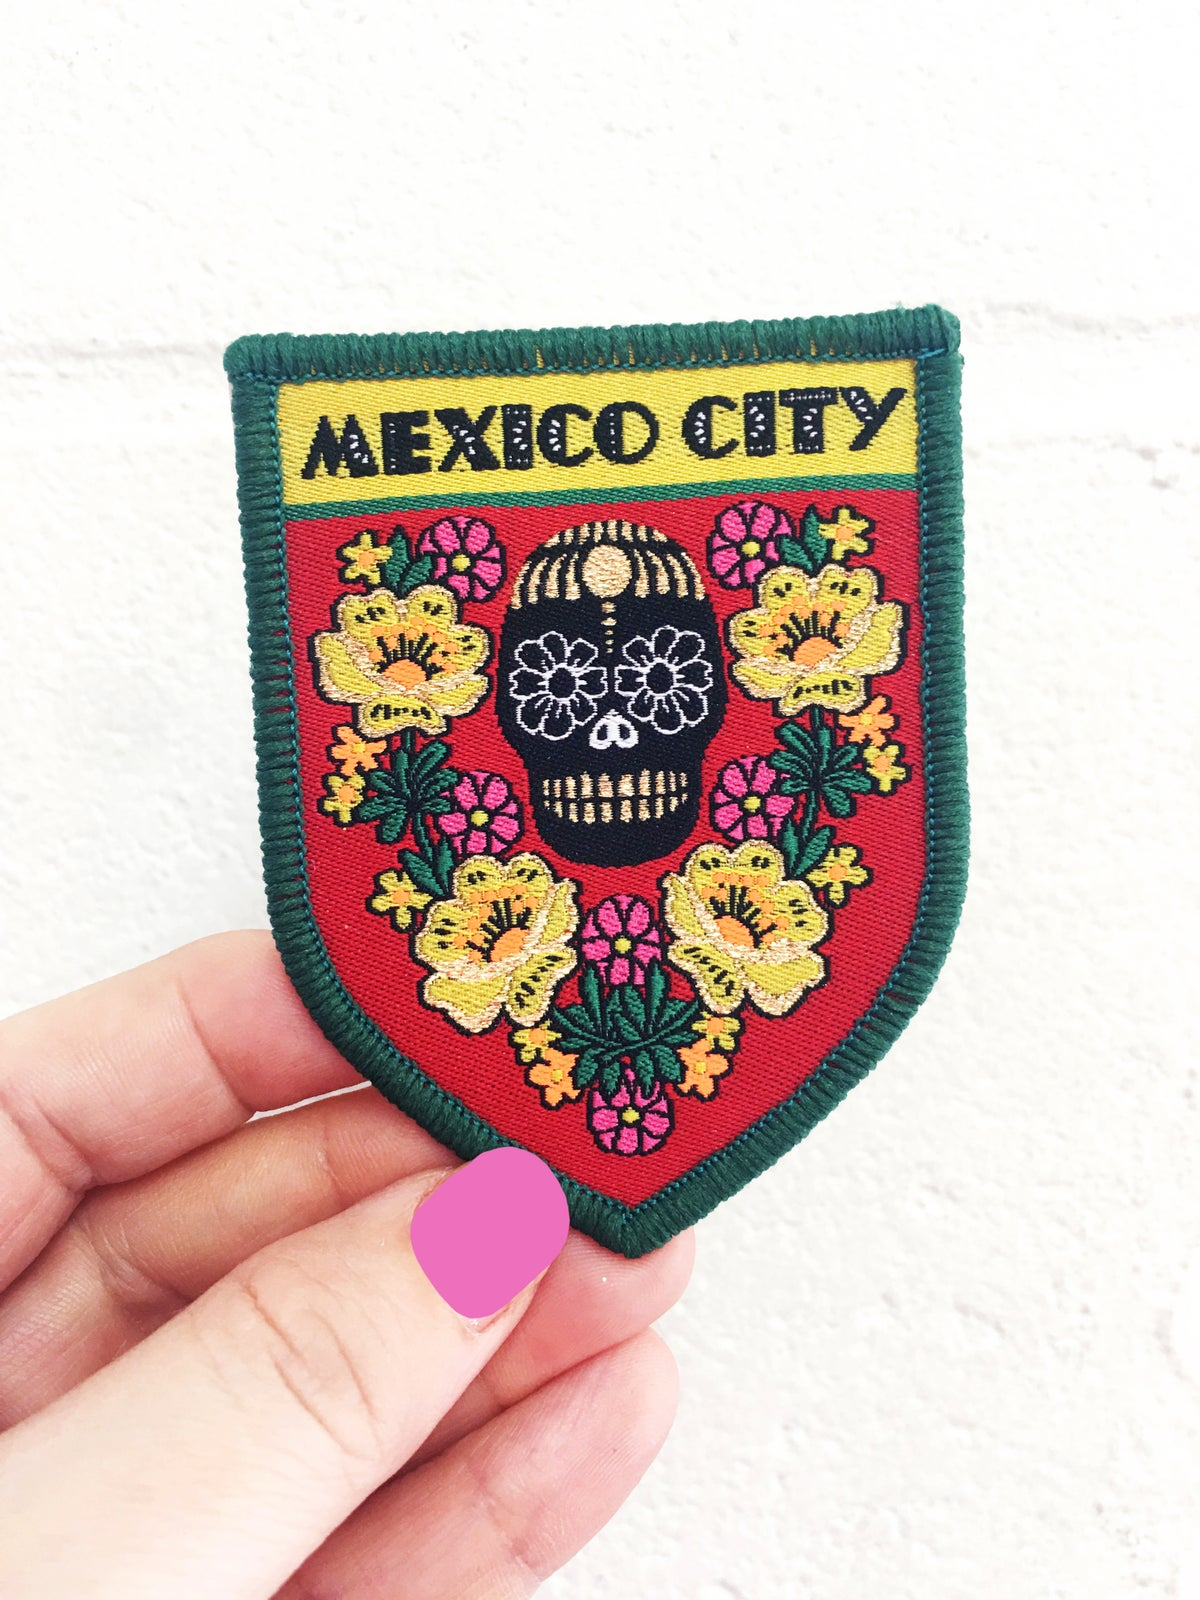 Mexico City Travel Patch